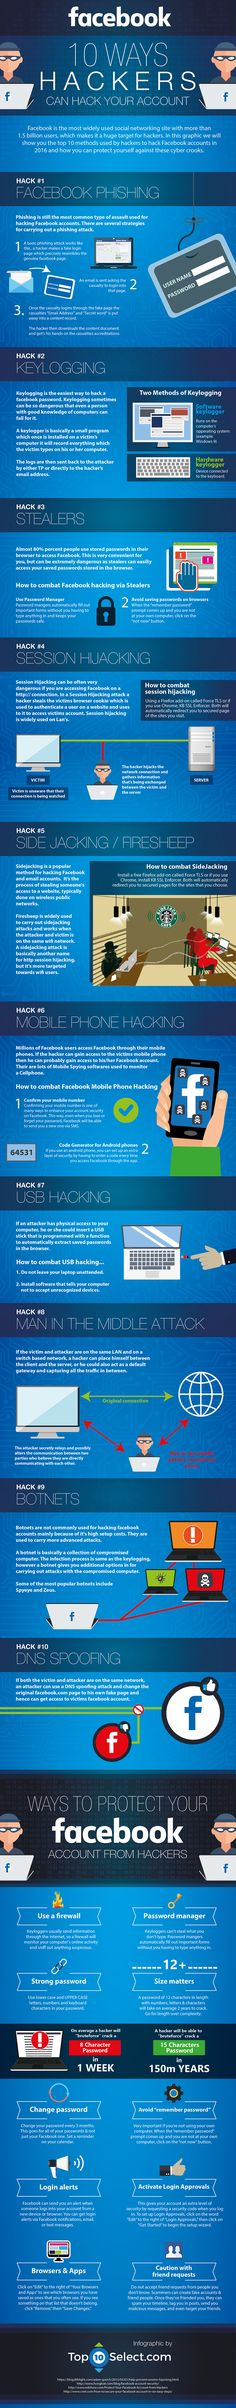 This infographic highlights the top 10 methods that hackers use to get into your Facebook accounts and how you can protect yourself against such attacks.